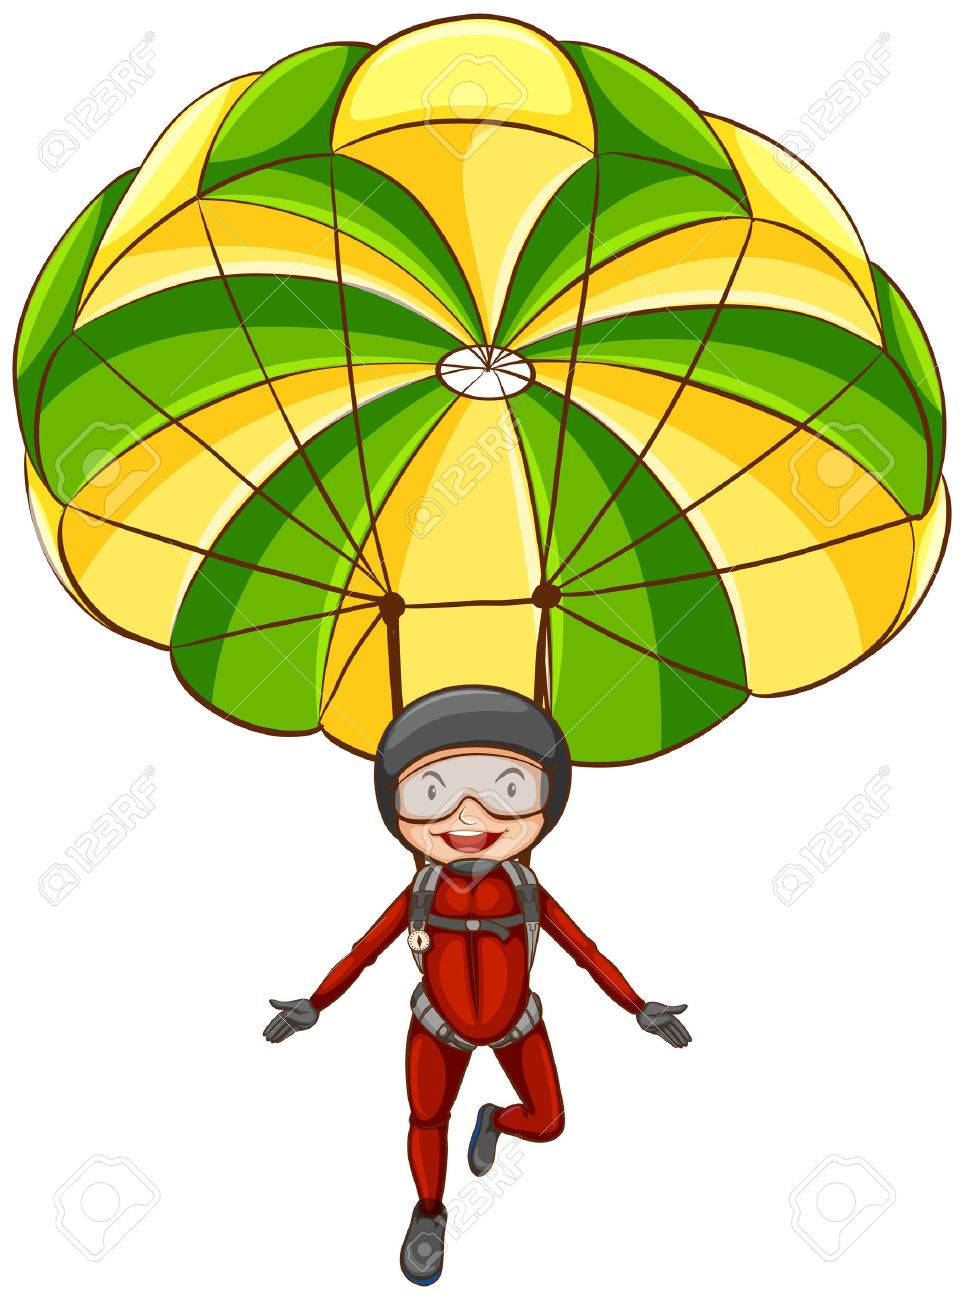 illustration of a person parachuting in the sky royalty free rh 123rf com parachute cartoon pictures parachute cartoon episodes